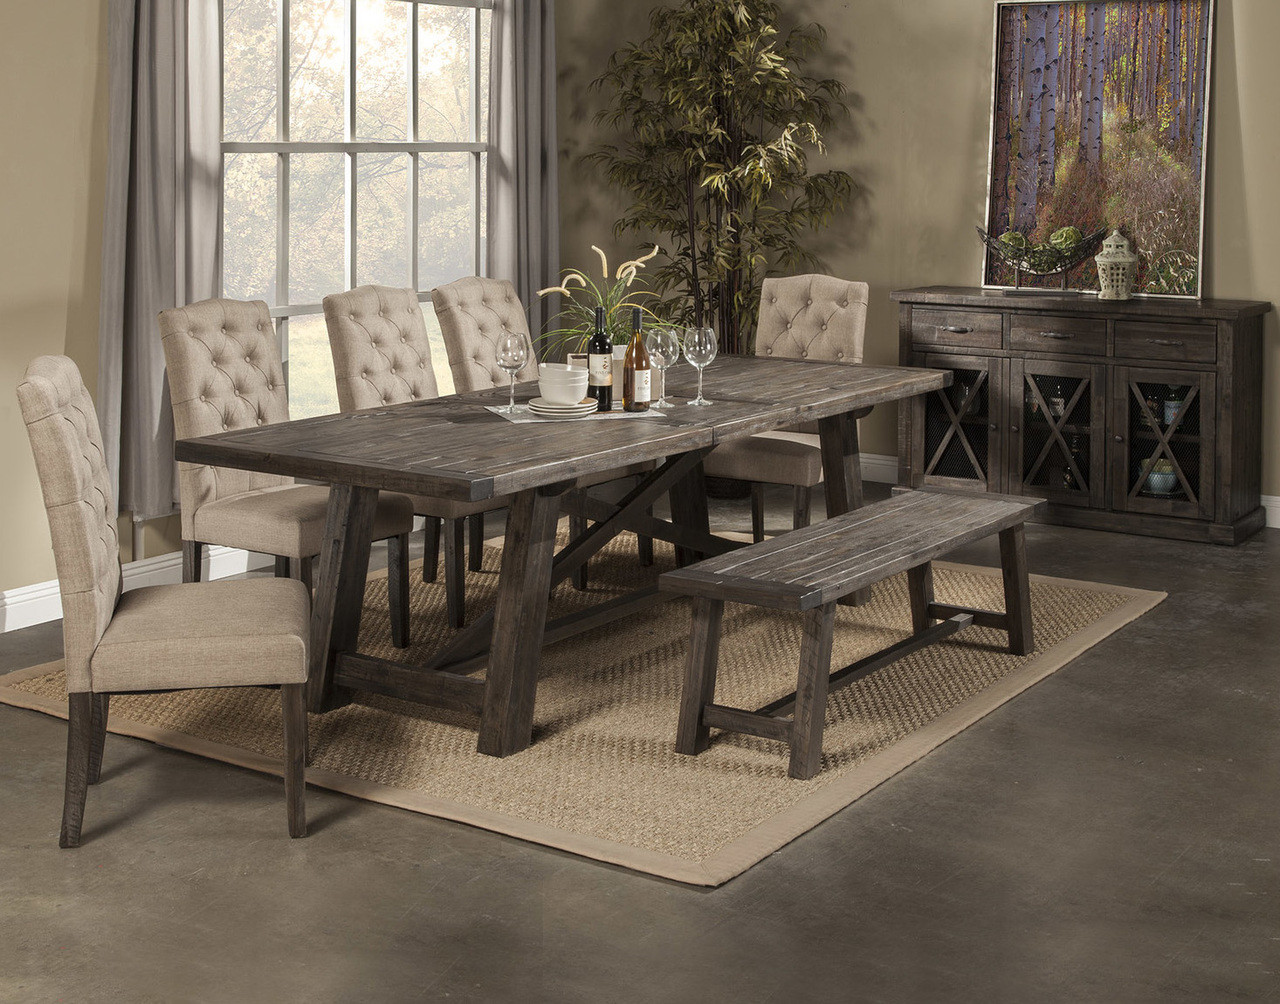 Newberry dining table with 4 chairs bench salvaged grey dining table